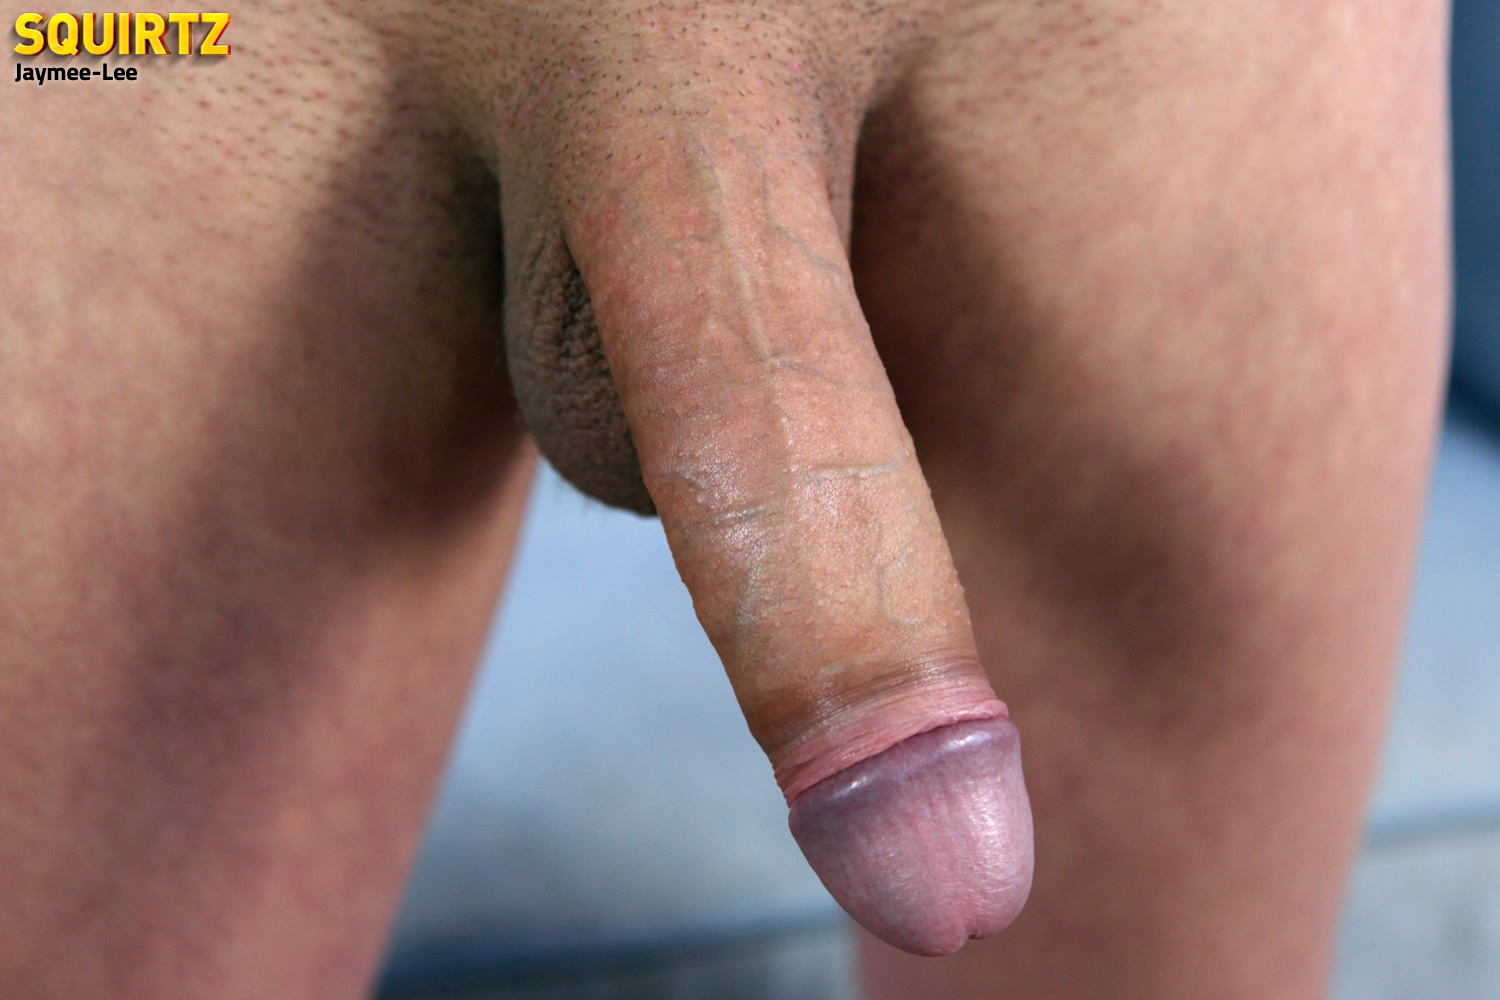 Squirtz-Jaymee-Lee-Twink-Jerking-Off-Massive-Uncut-Cock-Amateur-Gay-Porn-11 Amateur Florida Twink Jaymee-Lee Jerking His Massive Uncut Cock